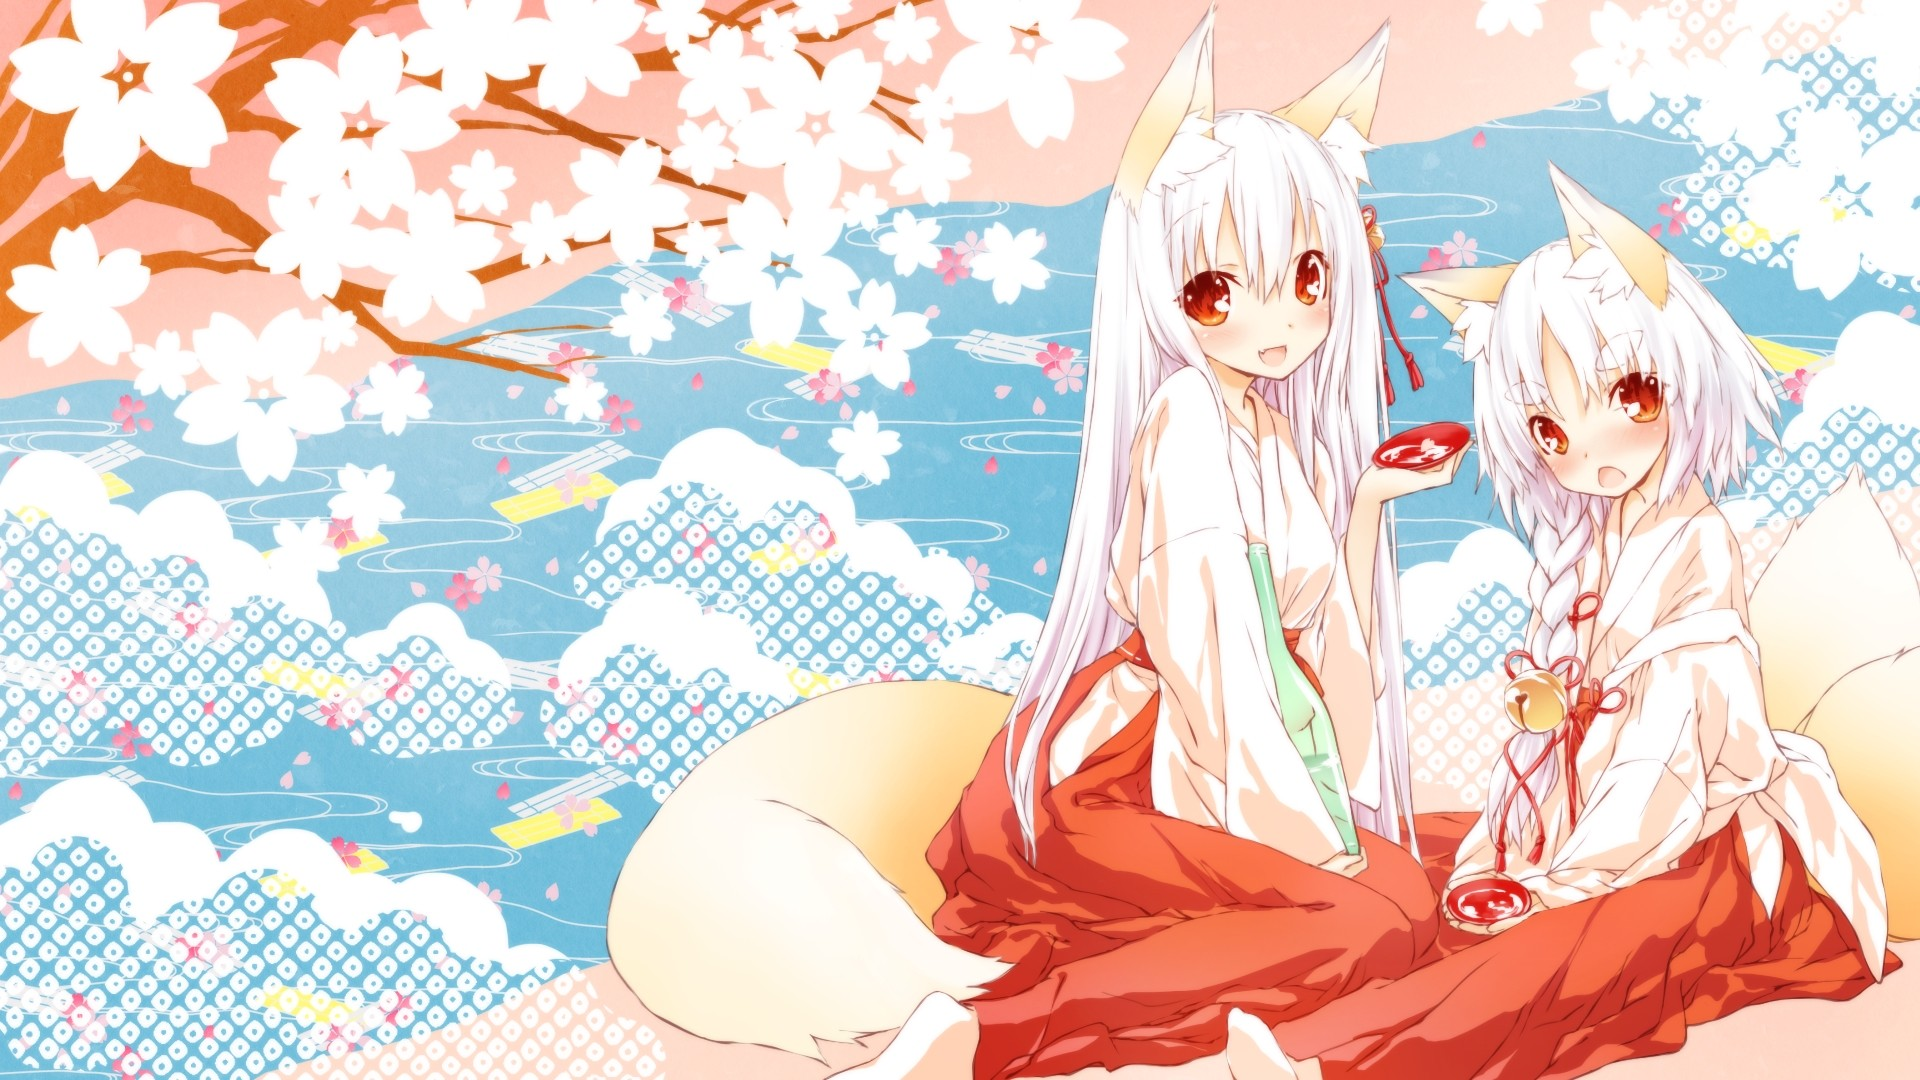 White Hair Anime Girl HD Wallpaper